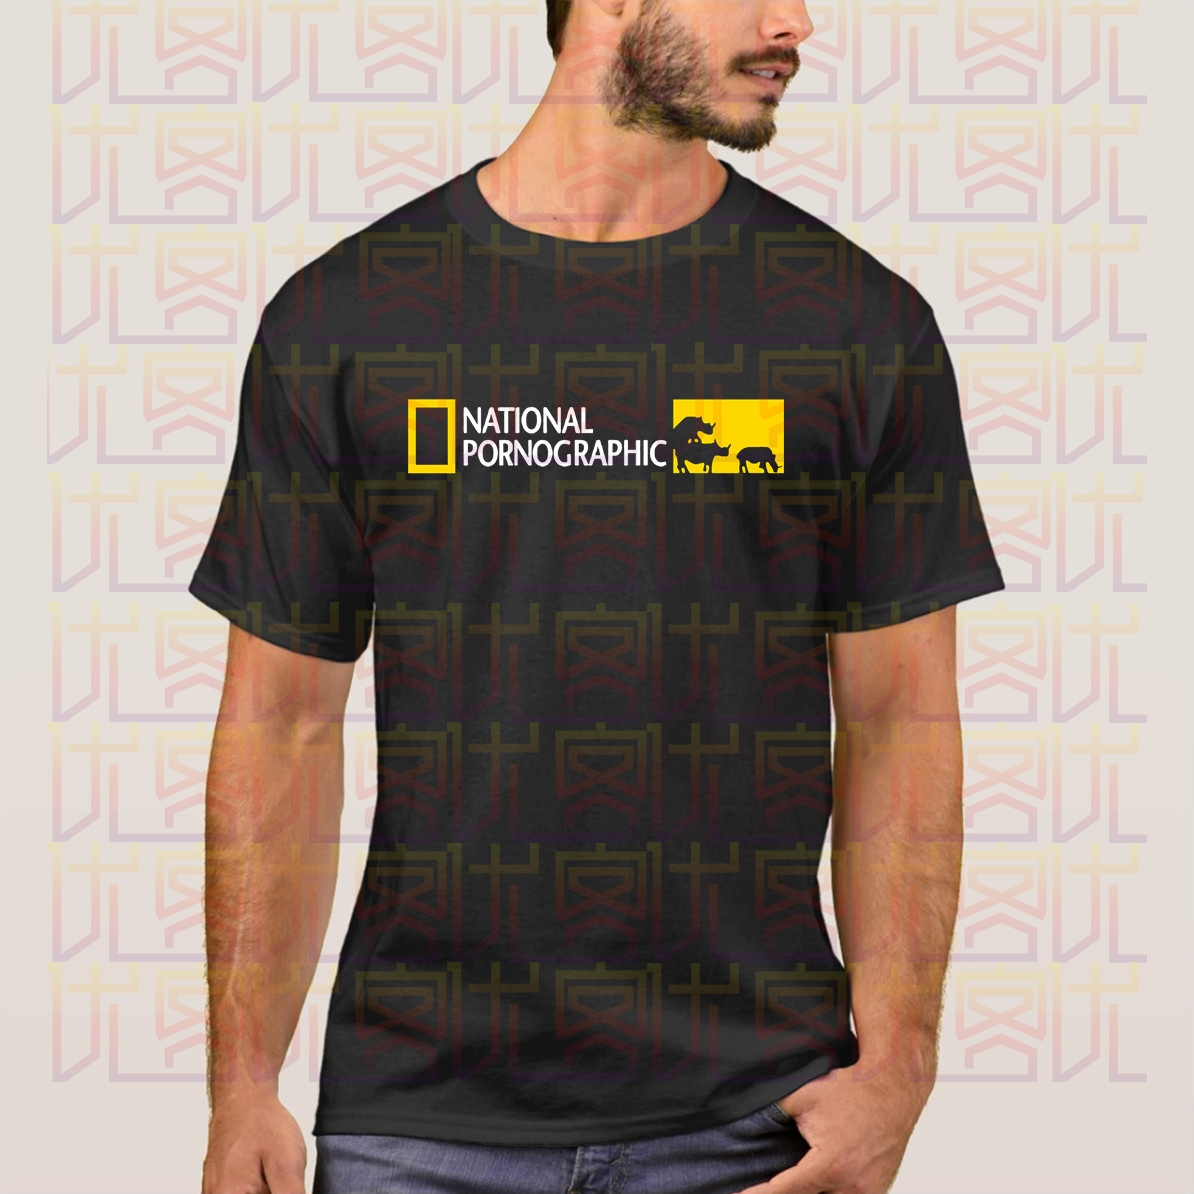 2020 Hot Sale 100% Cotton National Pornographic Funny National Geographic Inspired T-Shirt S-XXXL Tee Shirt Amazing Unique